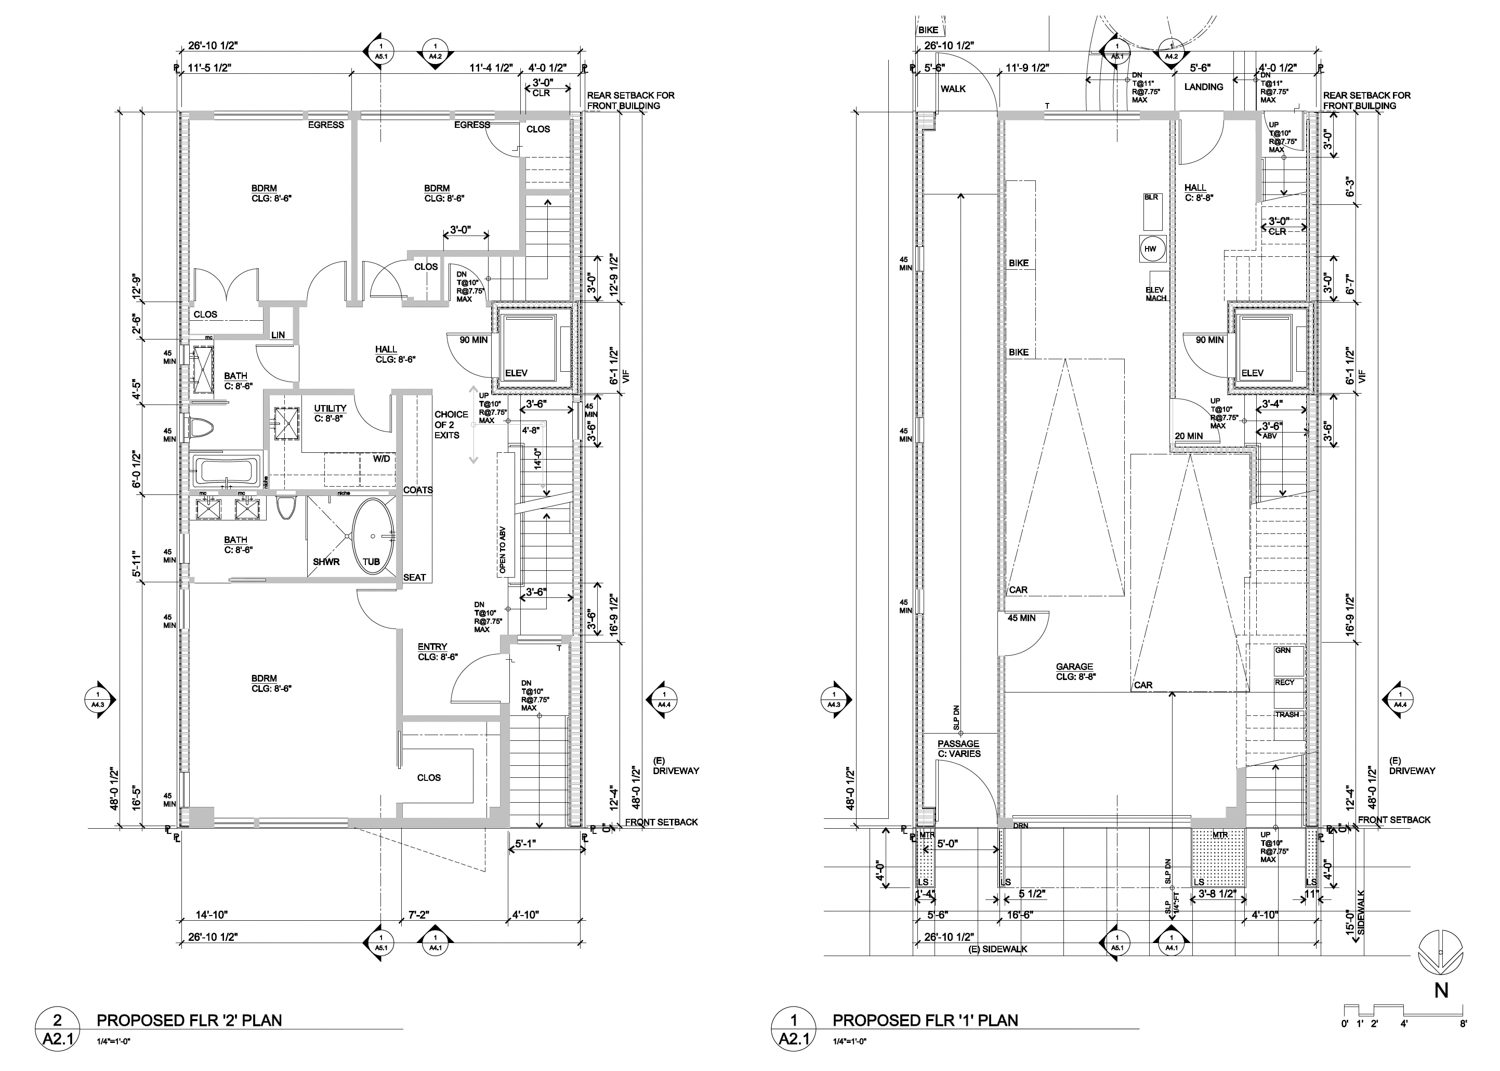 939 Lombard Street first and second level floorplan, illustration by Curtis Hollenbeck